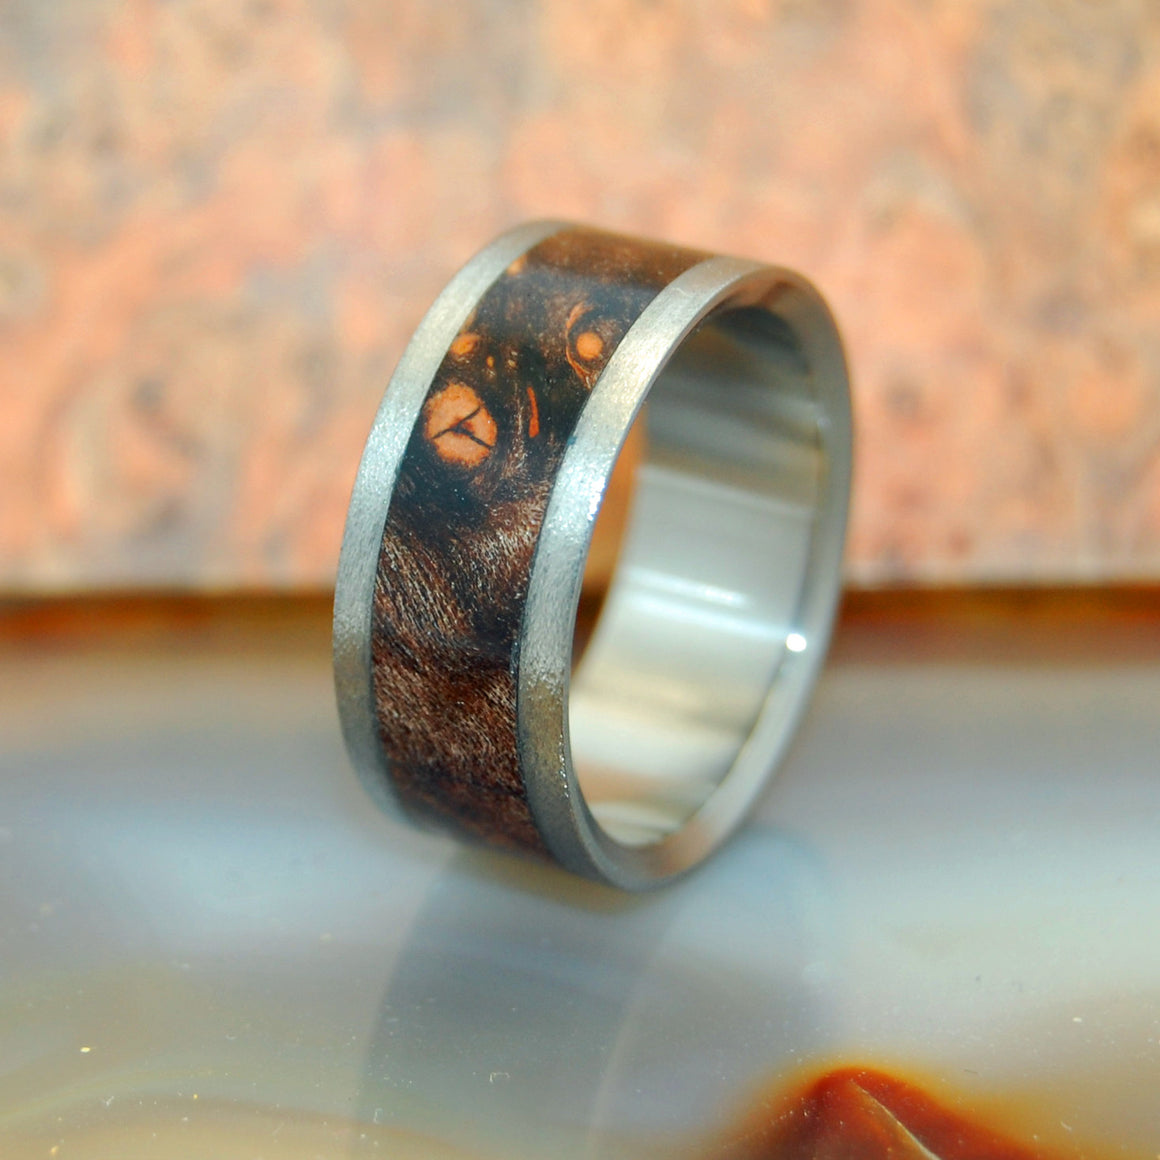 Night Flight | Maple Wood - Titanium Wedding Ring - Minter and Richter Designs